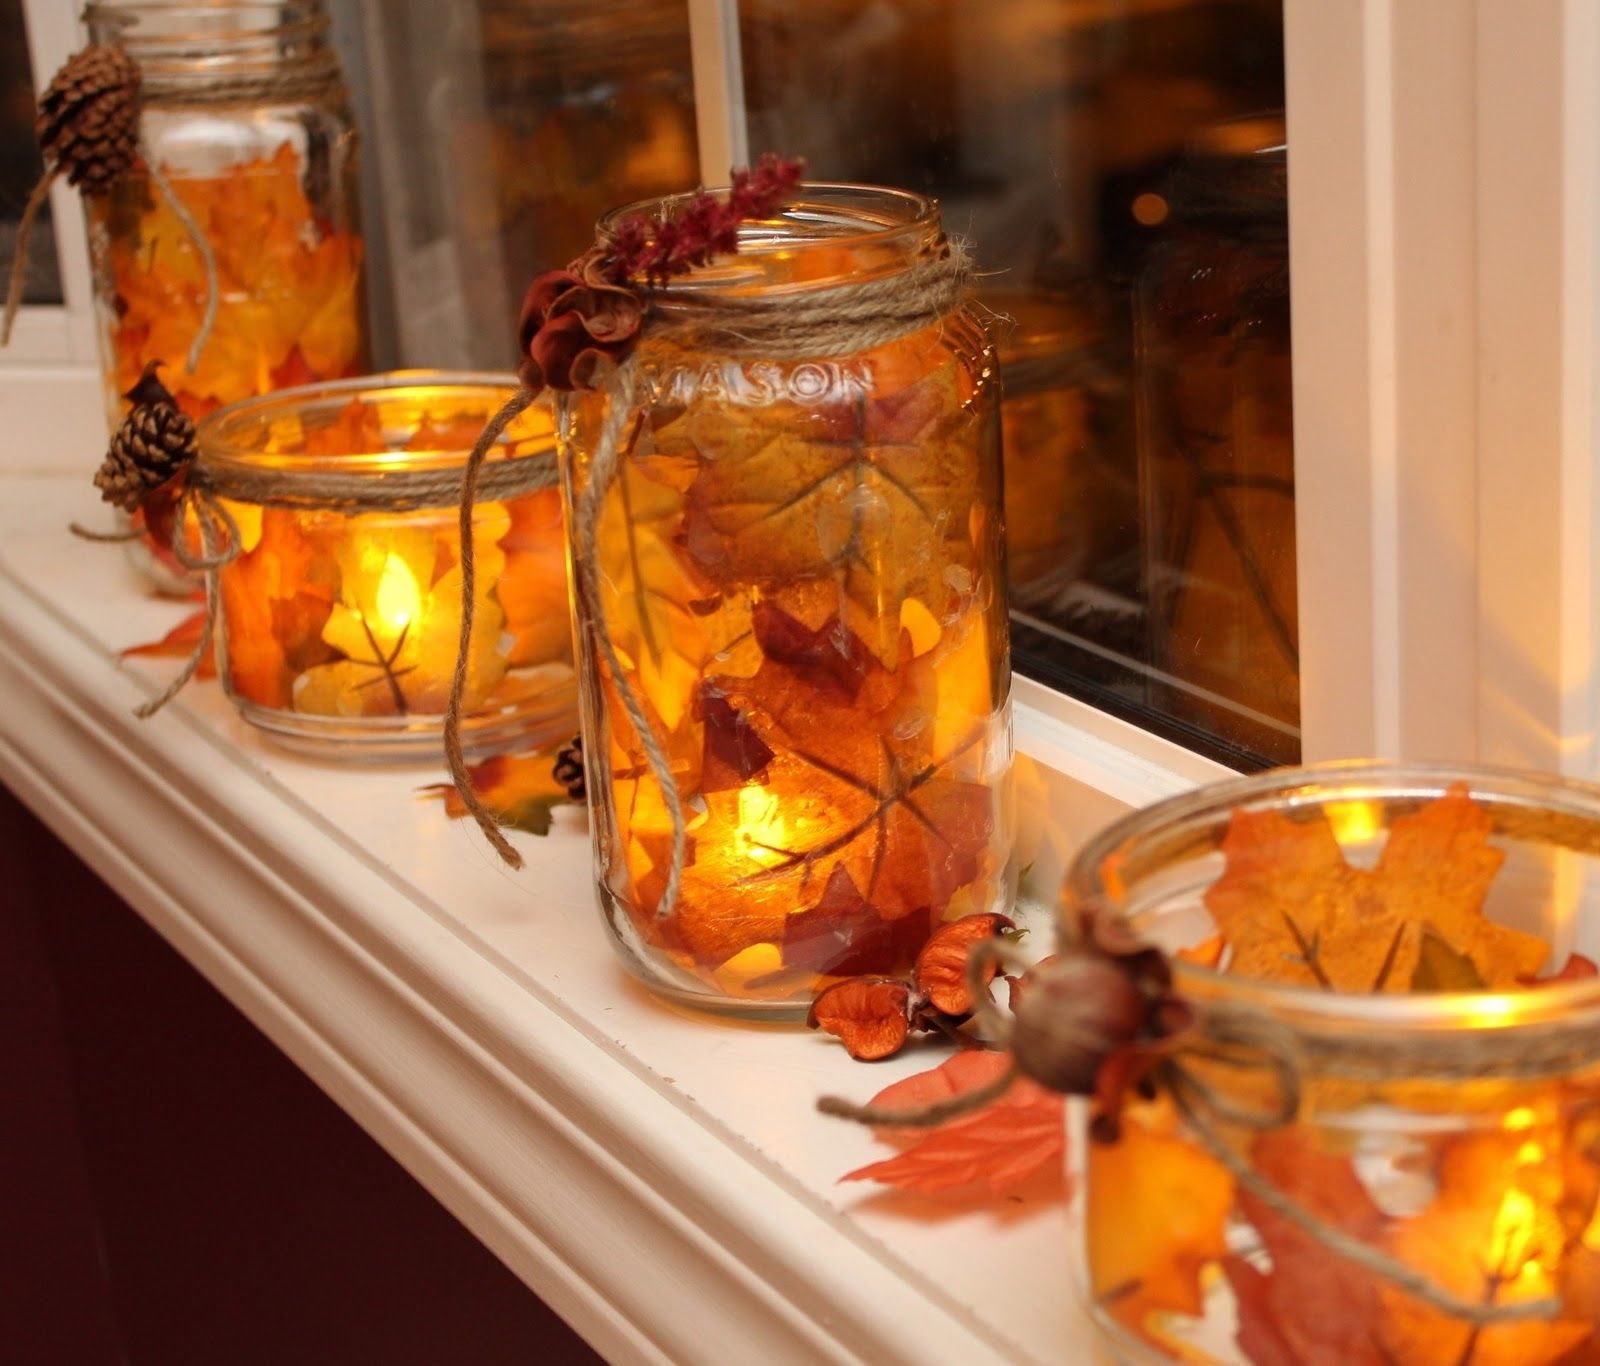 Autumn Leaf Candles Pictures, Photos, and Images for ...